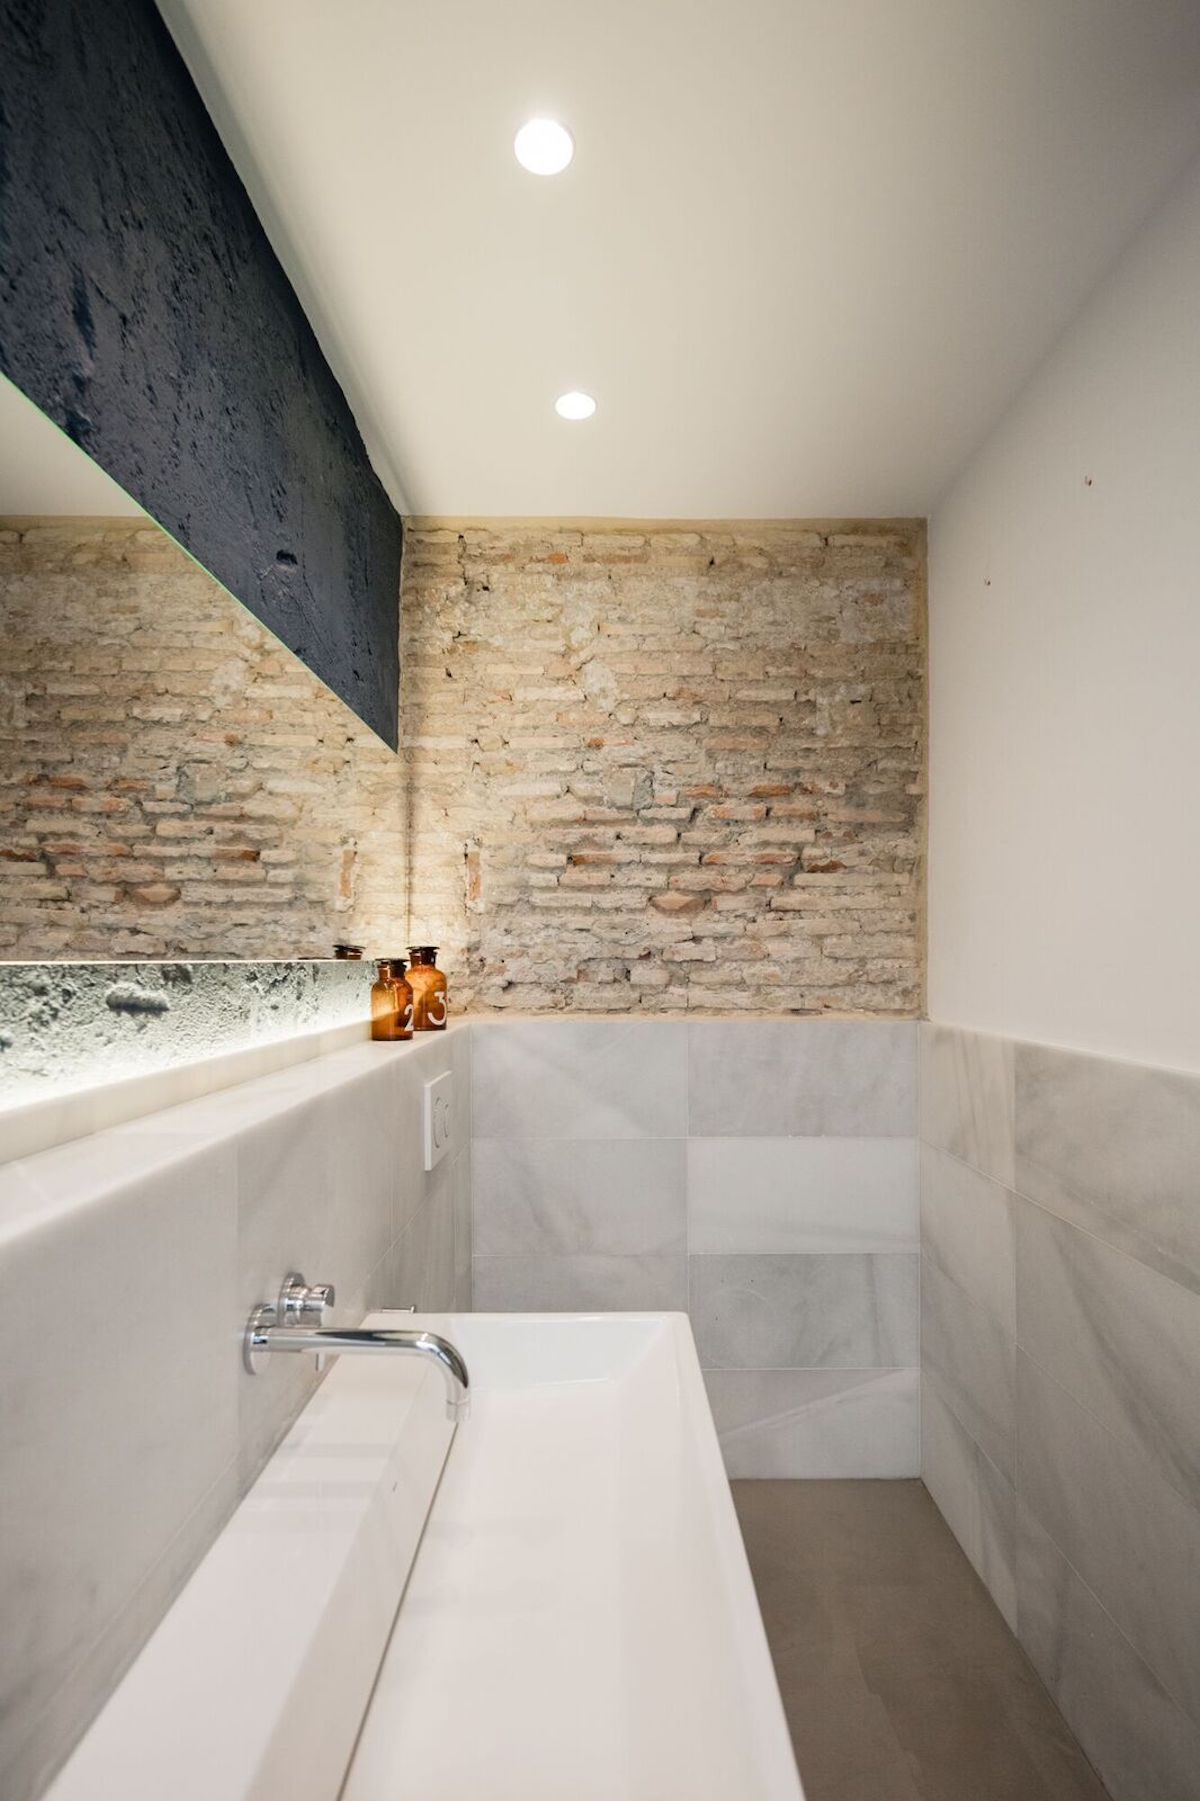 The brick walls are one of the elements which unify the internal spaces, bathroom included